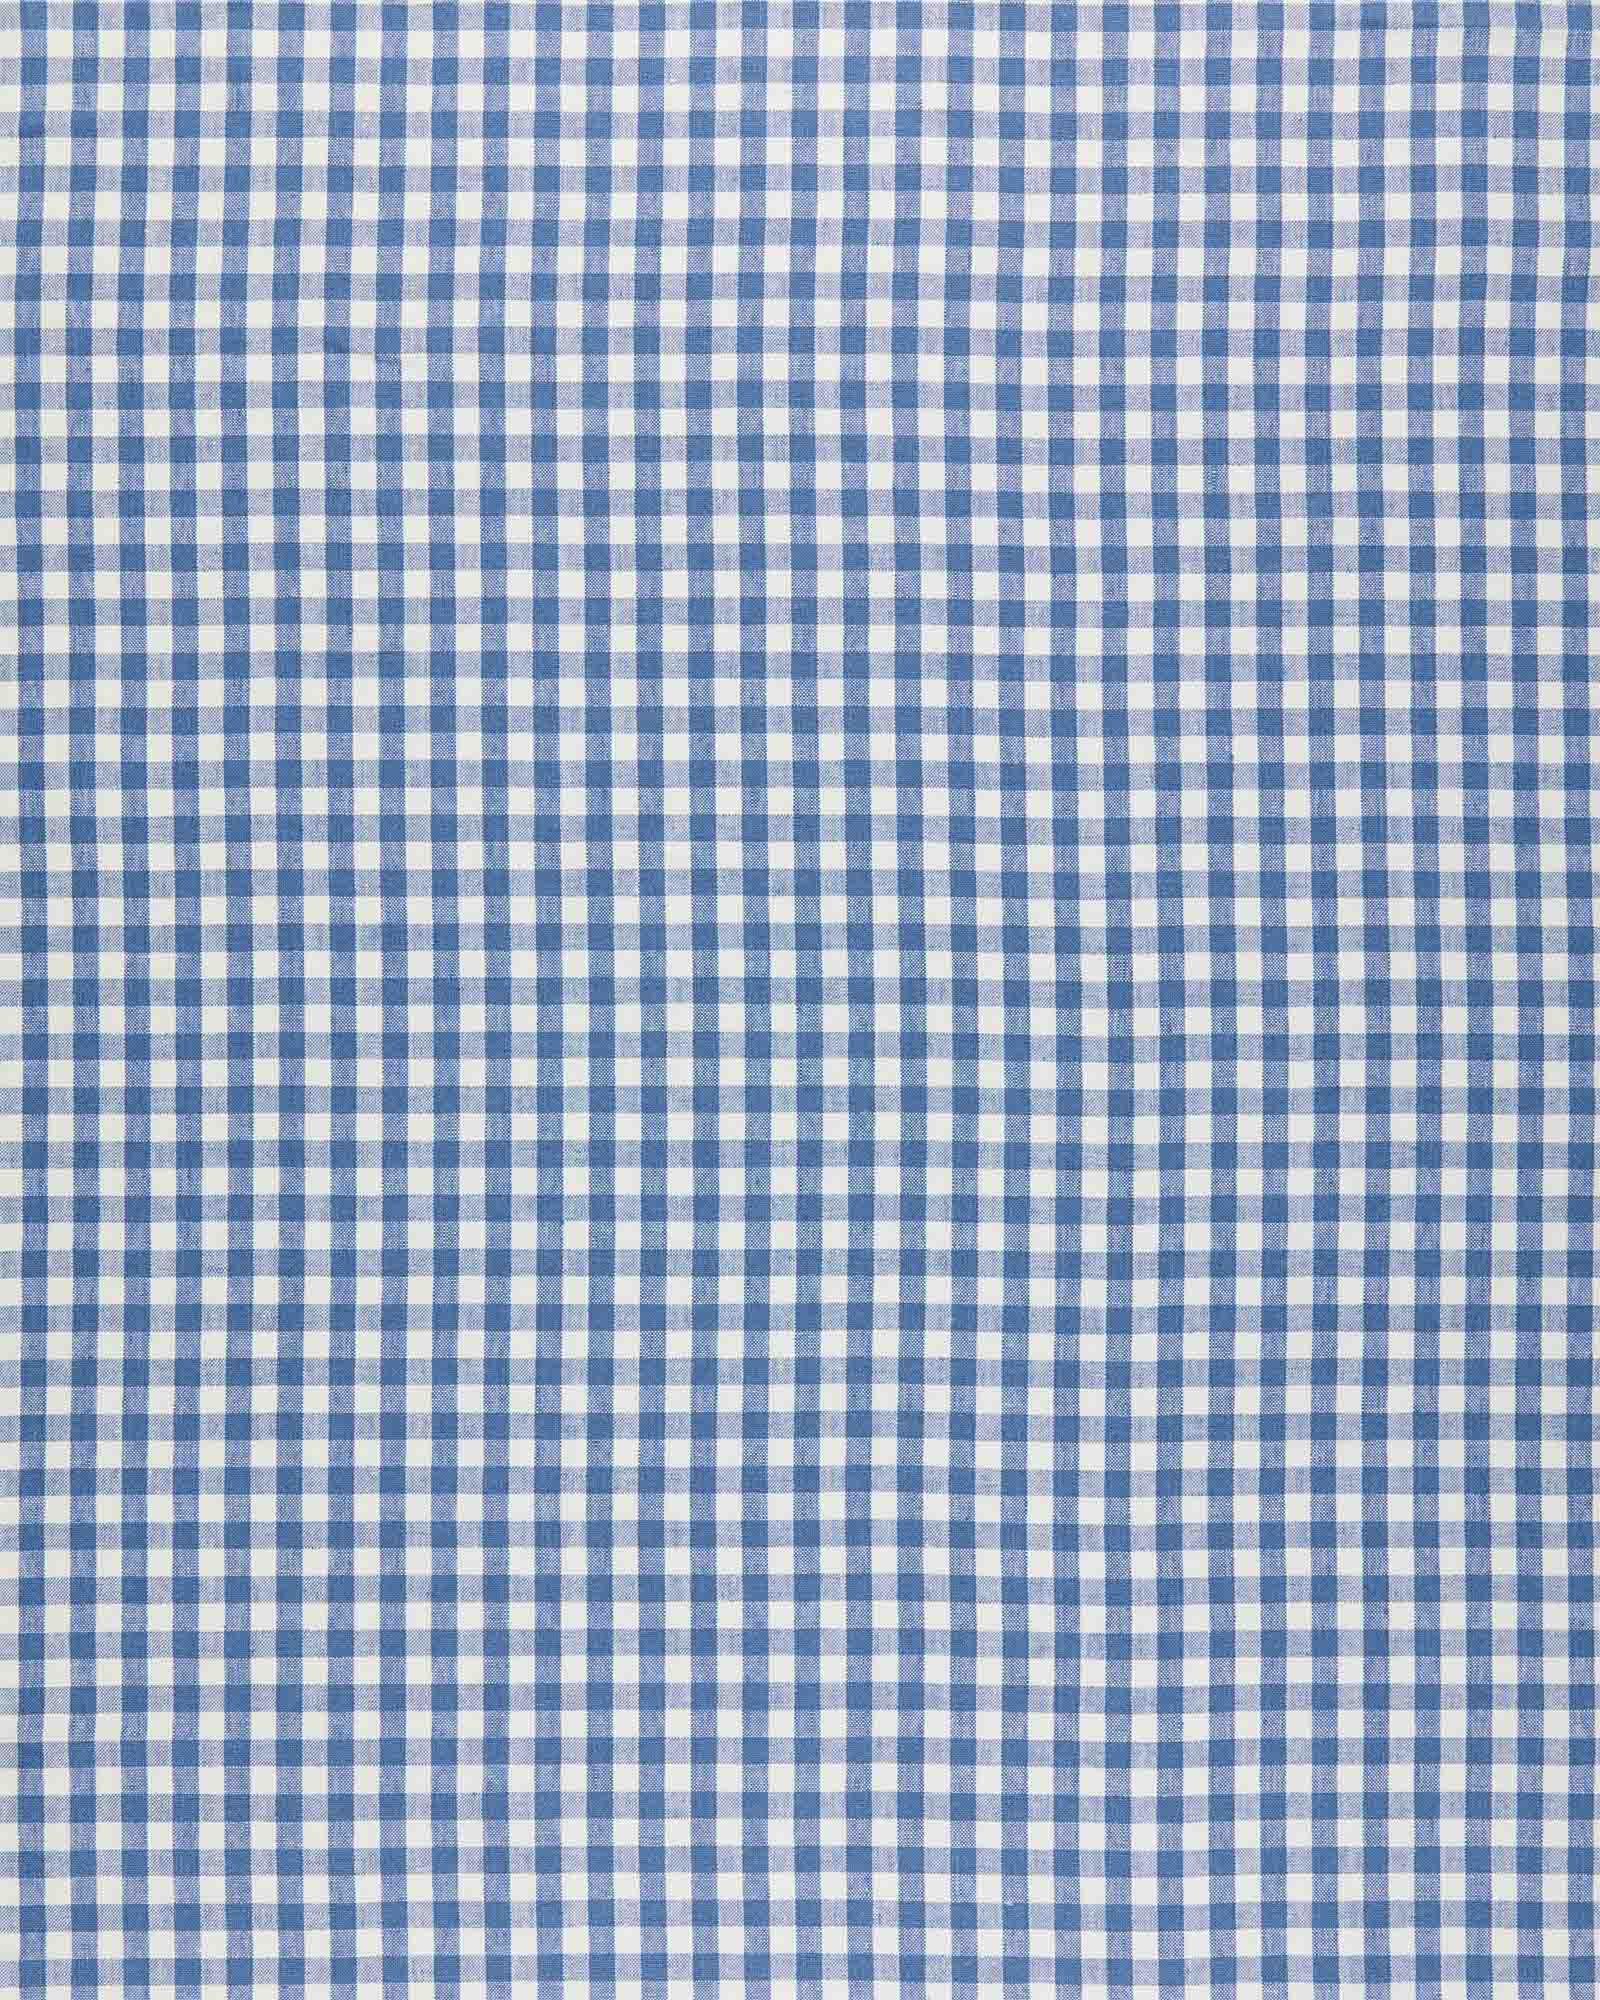 Fabric by the Yard - Petite Gingham Linen, French Blue